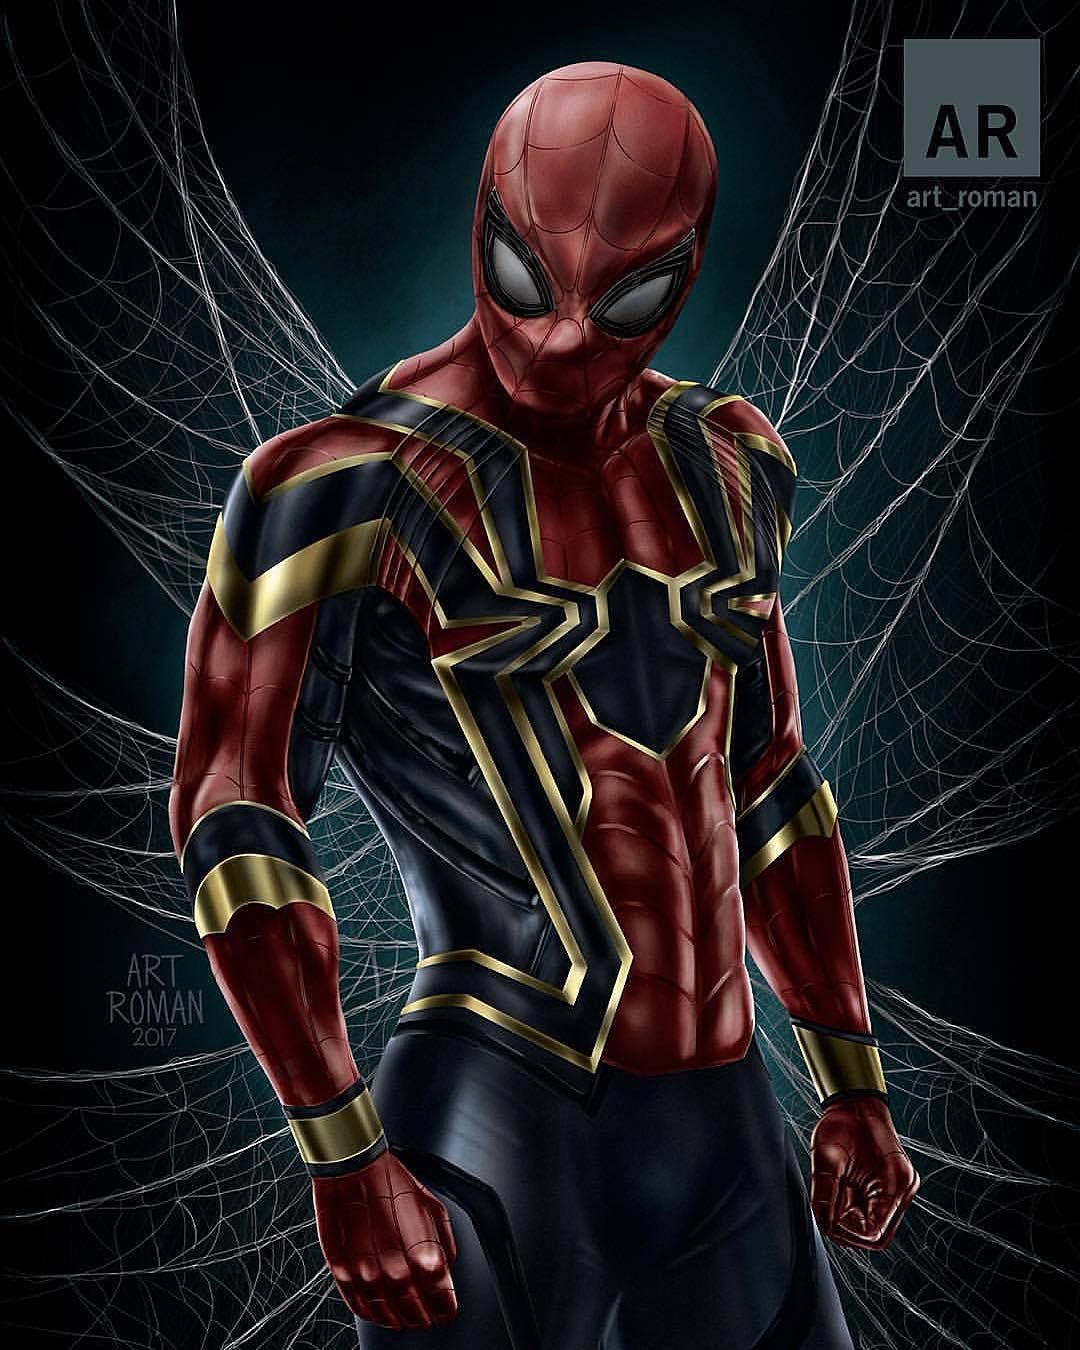 Art Roman With A Beautiful Rendition Of The Iron Spider Man From The